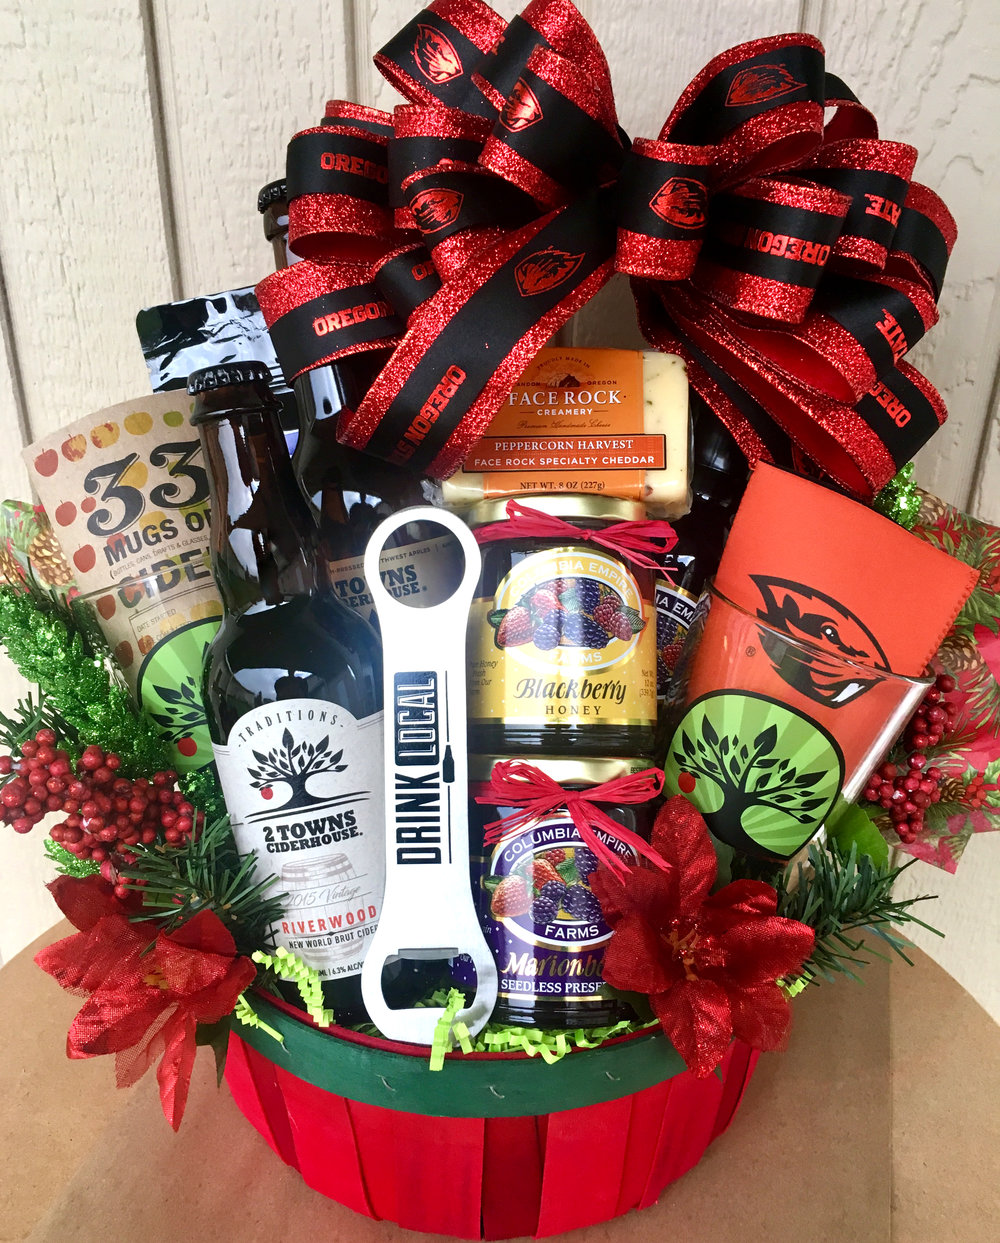 2 Towns Cider Holiday Gift Basket